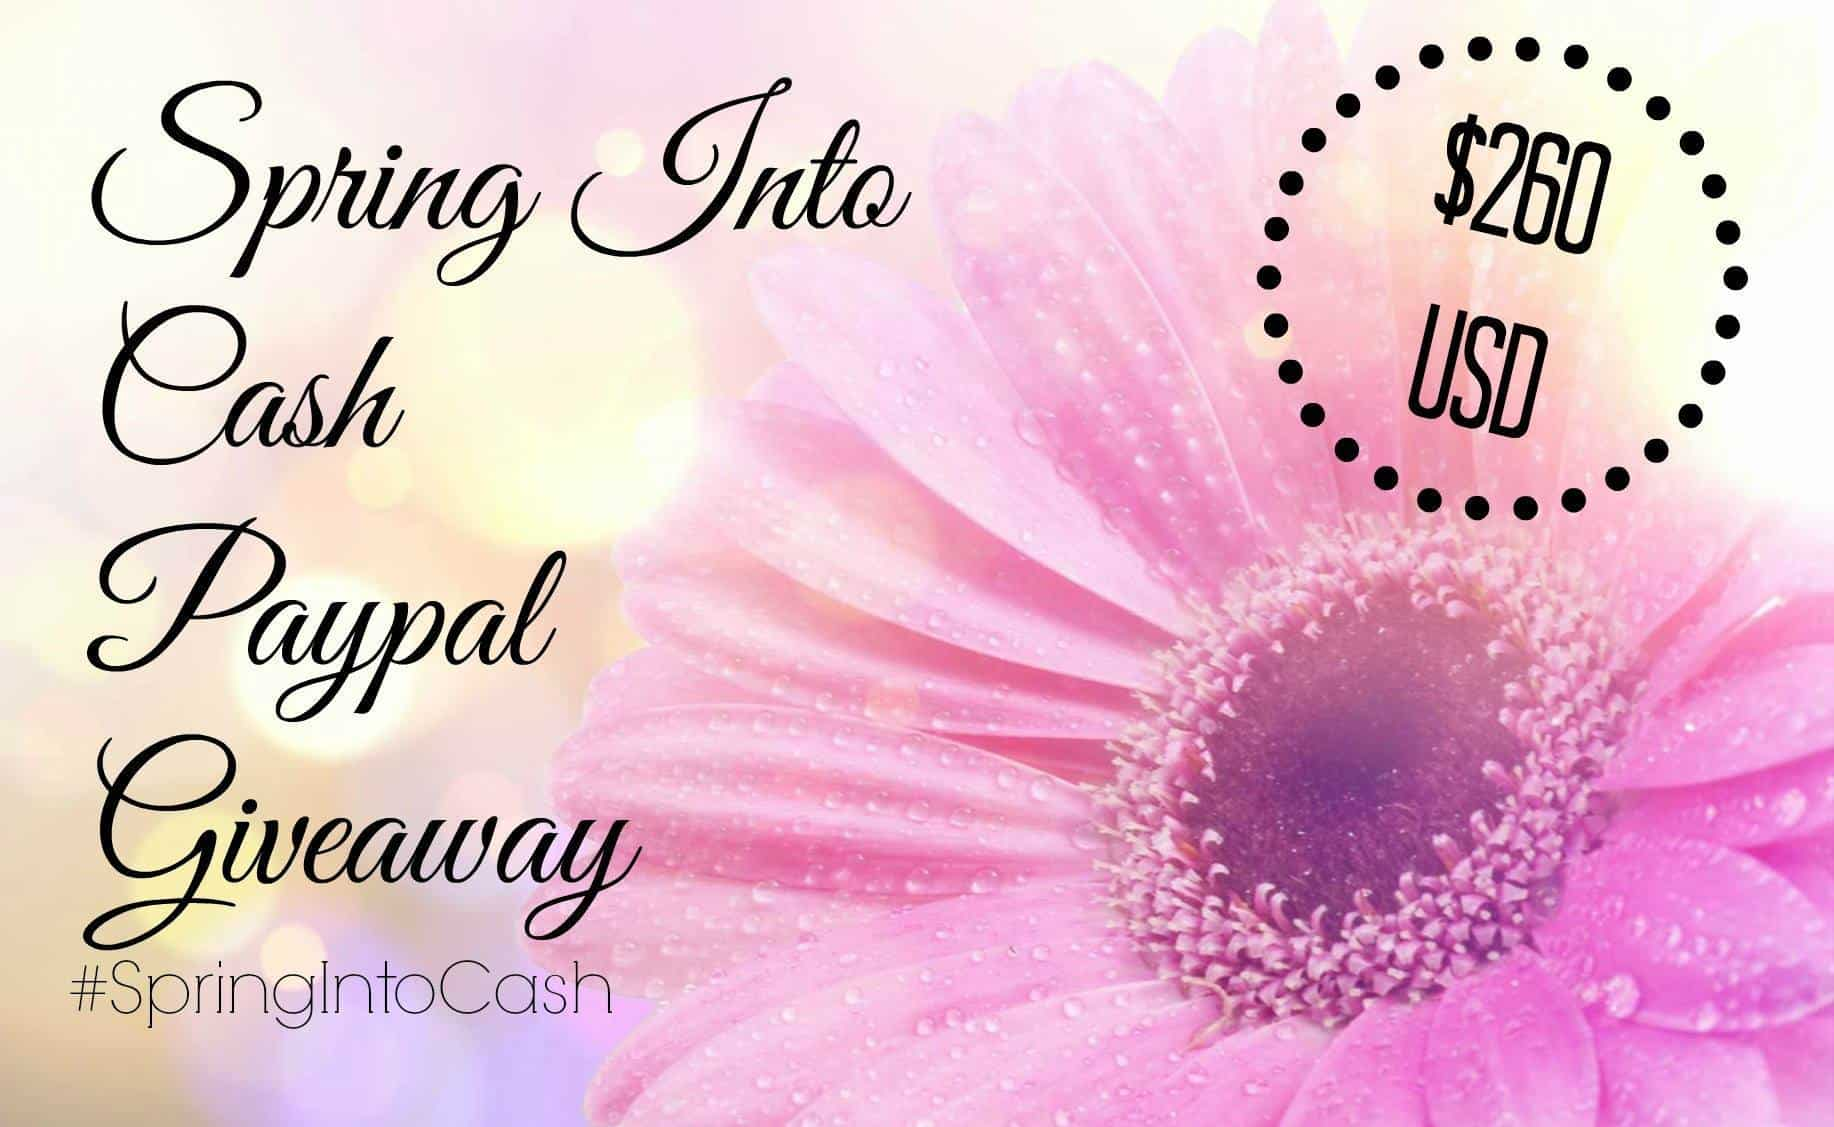 srping-into-cash-giveaway-1